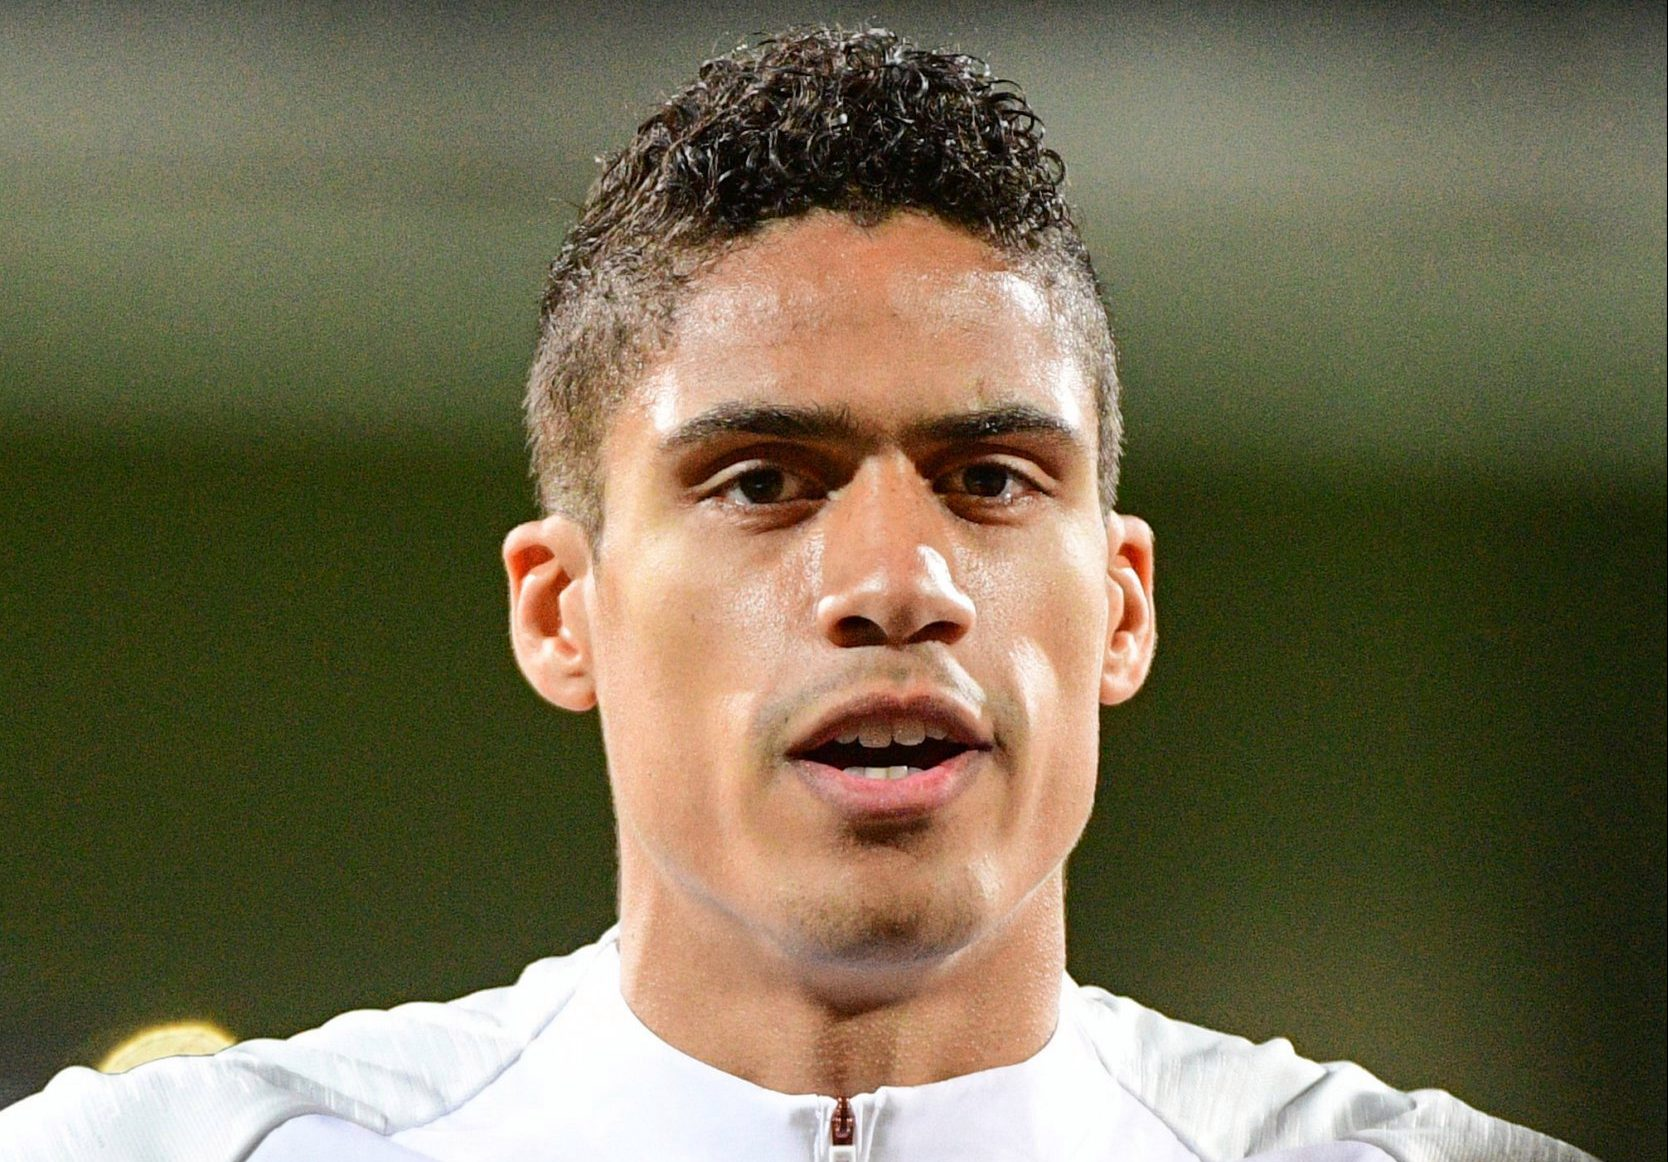 Raphael Varane of France during the Qualifying European Championship match between Moldova and France at Zimbru Stadium on March 22, 2019 in Chisinau, Moldova. (Photo by Dave Winter/Icon Sport via Getty Images)